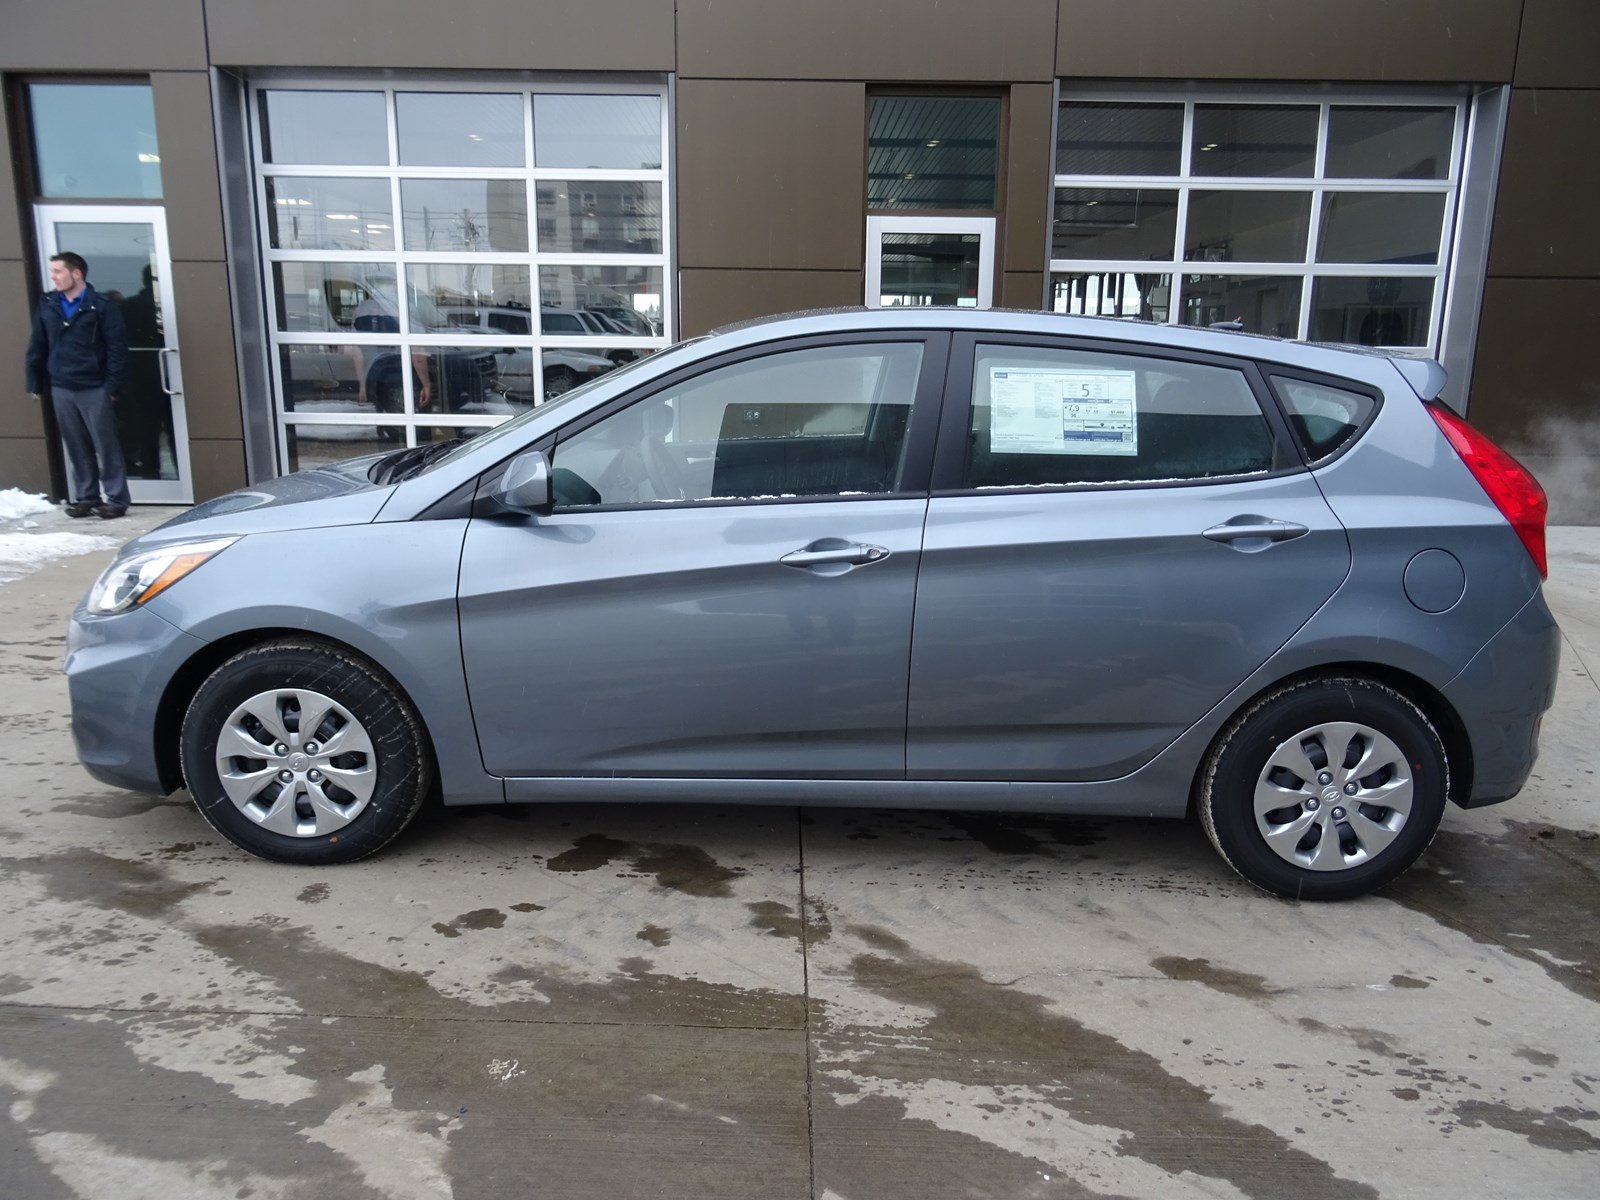 New 2017 Hyundai Accent Hatchback in Edmonton HAC1919